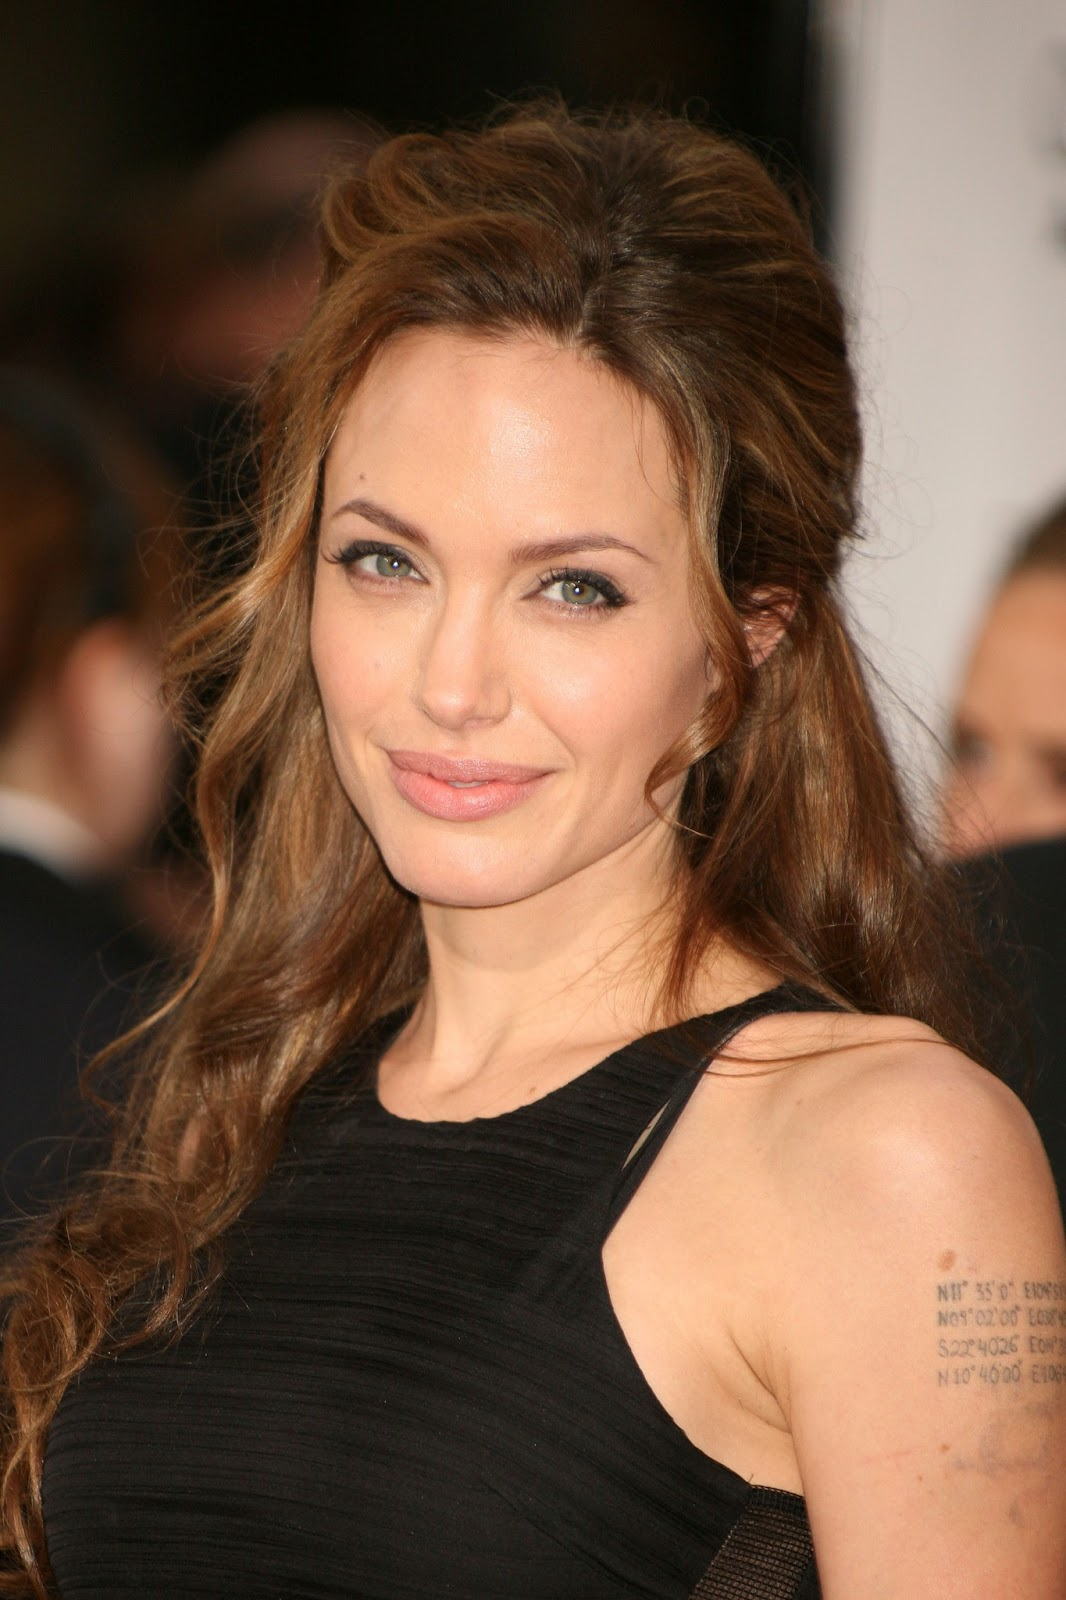 happy birthday to angelina jolie - june 4th | hd wallpapers (high